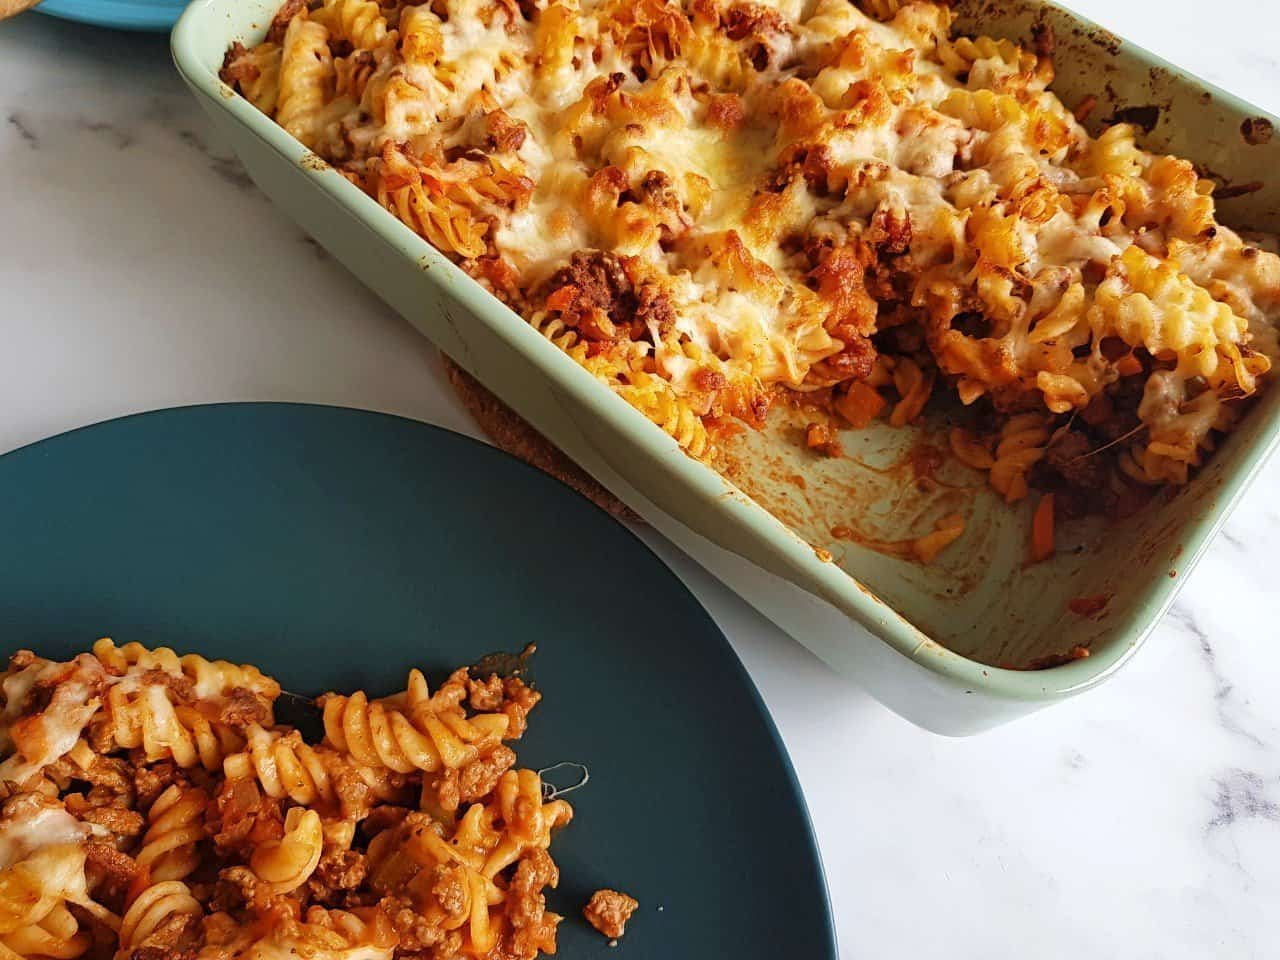 Minced beef pasta bake with a plated portion in front.